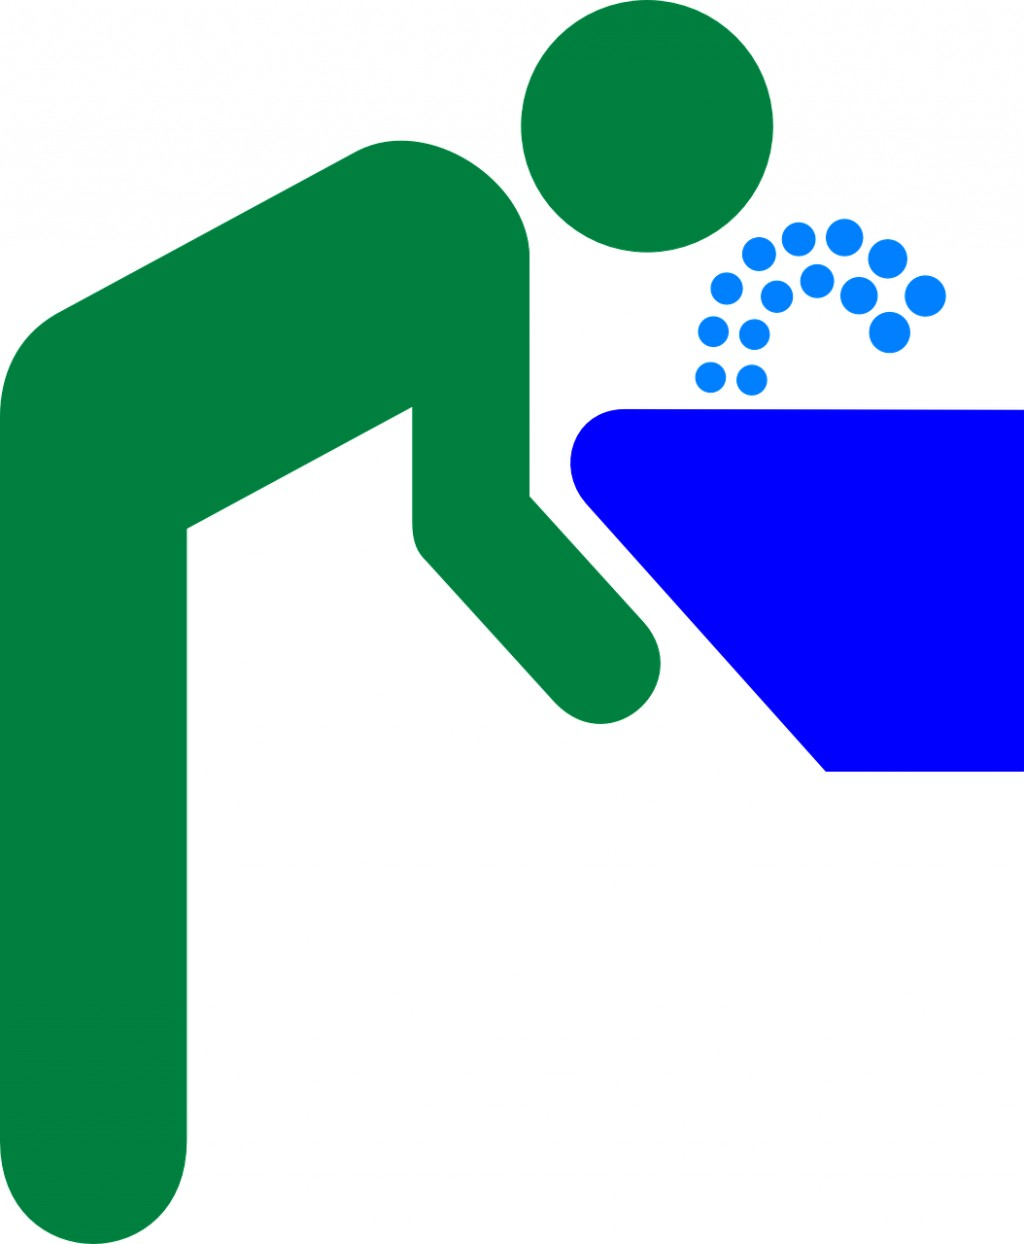 Water bubbler clipart.